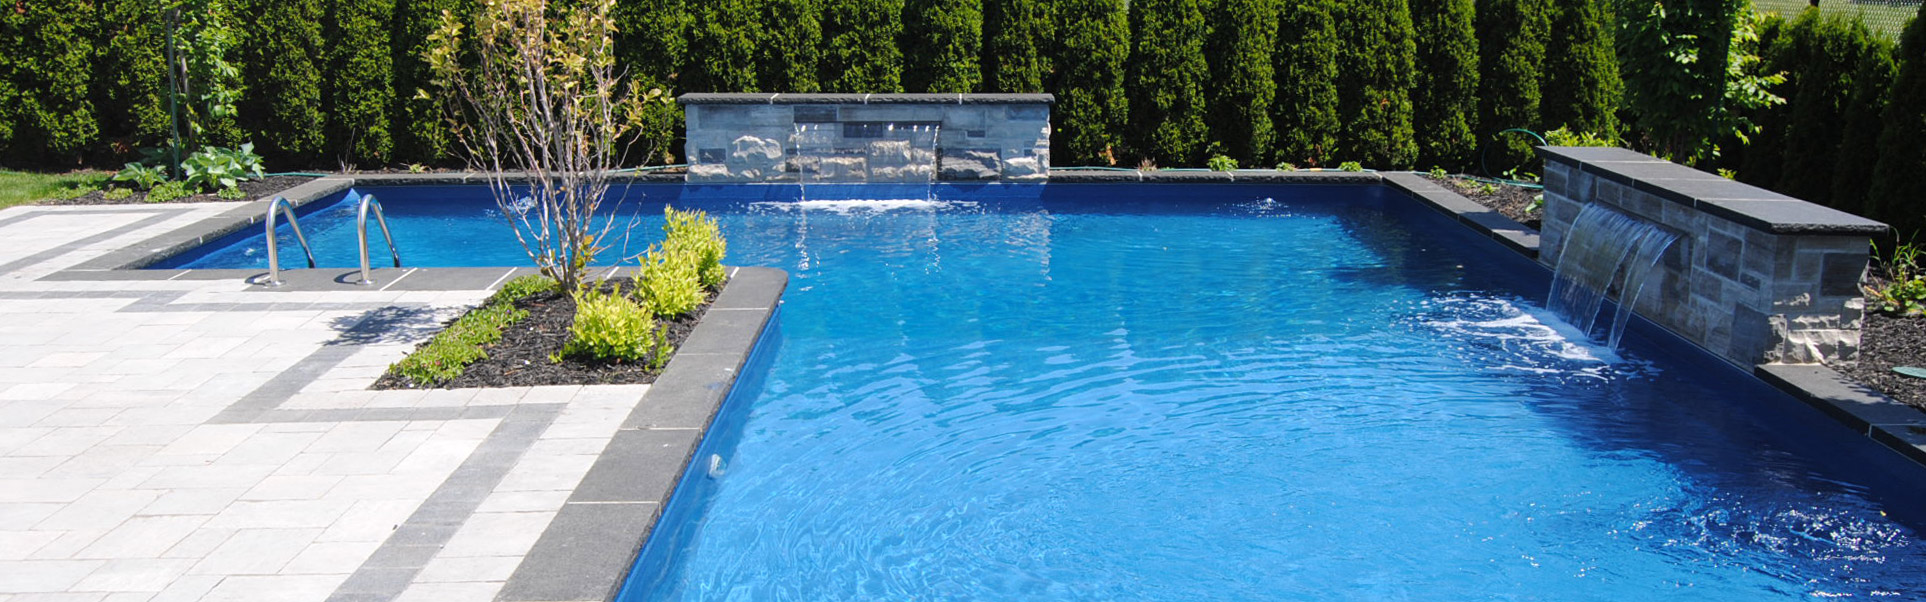 How to choose a pool 91